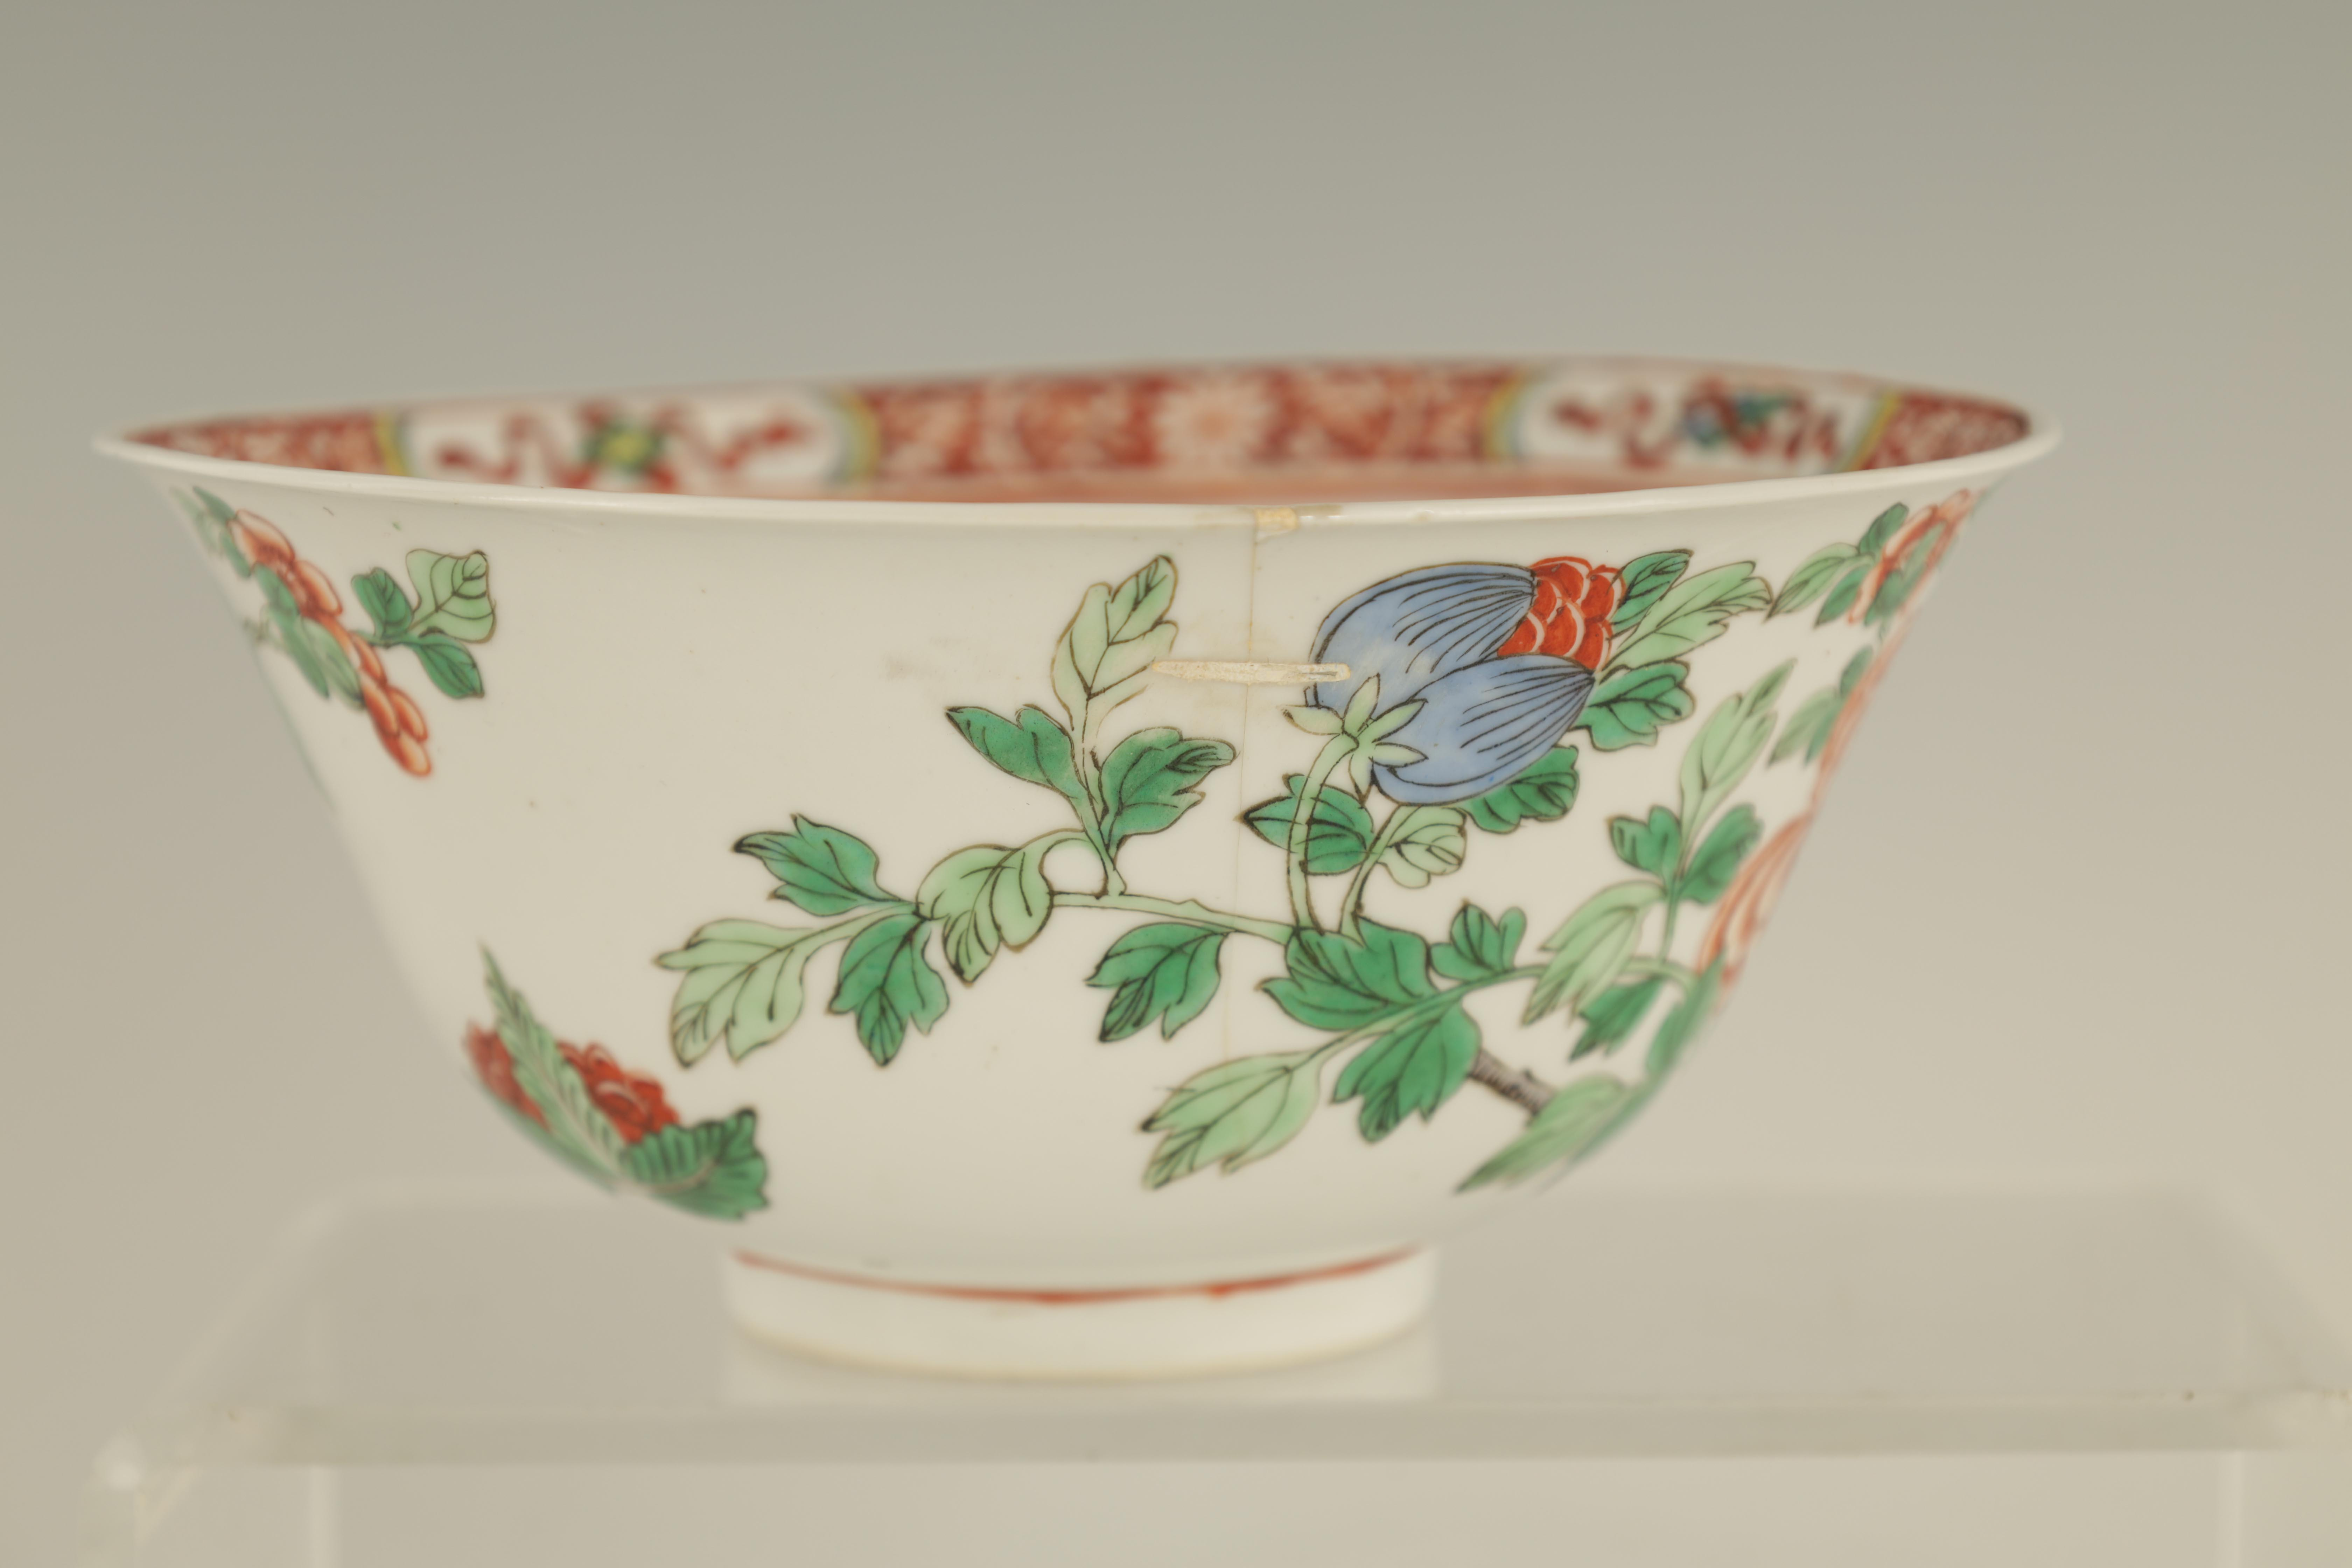 AN 18TH CENTURY CHINESE FAMILLE VERTE PORCELAIN BOWL BEARING KANGXI MARKS decorated with birds - Image 4 of 7